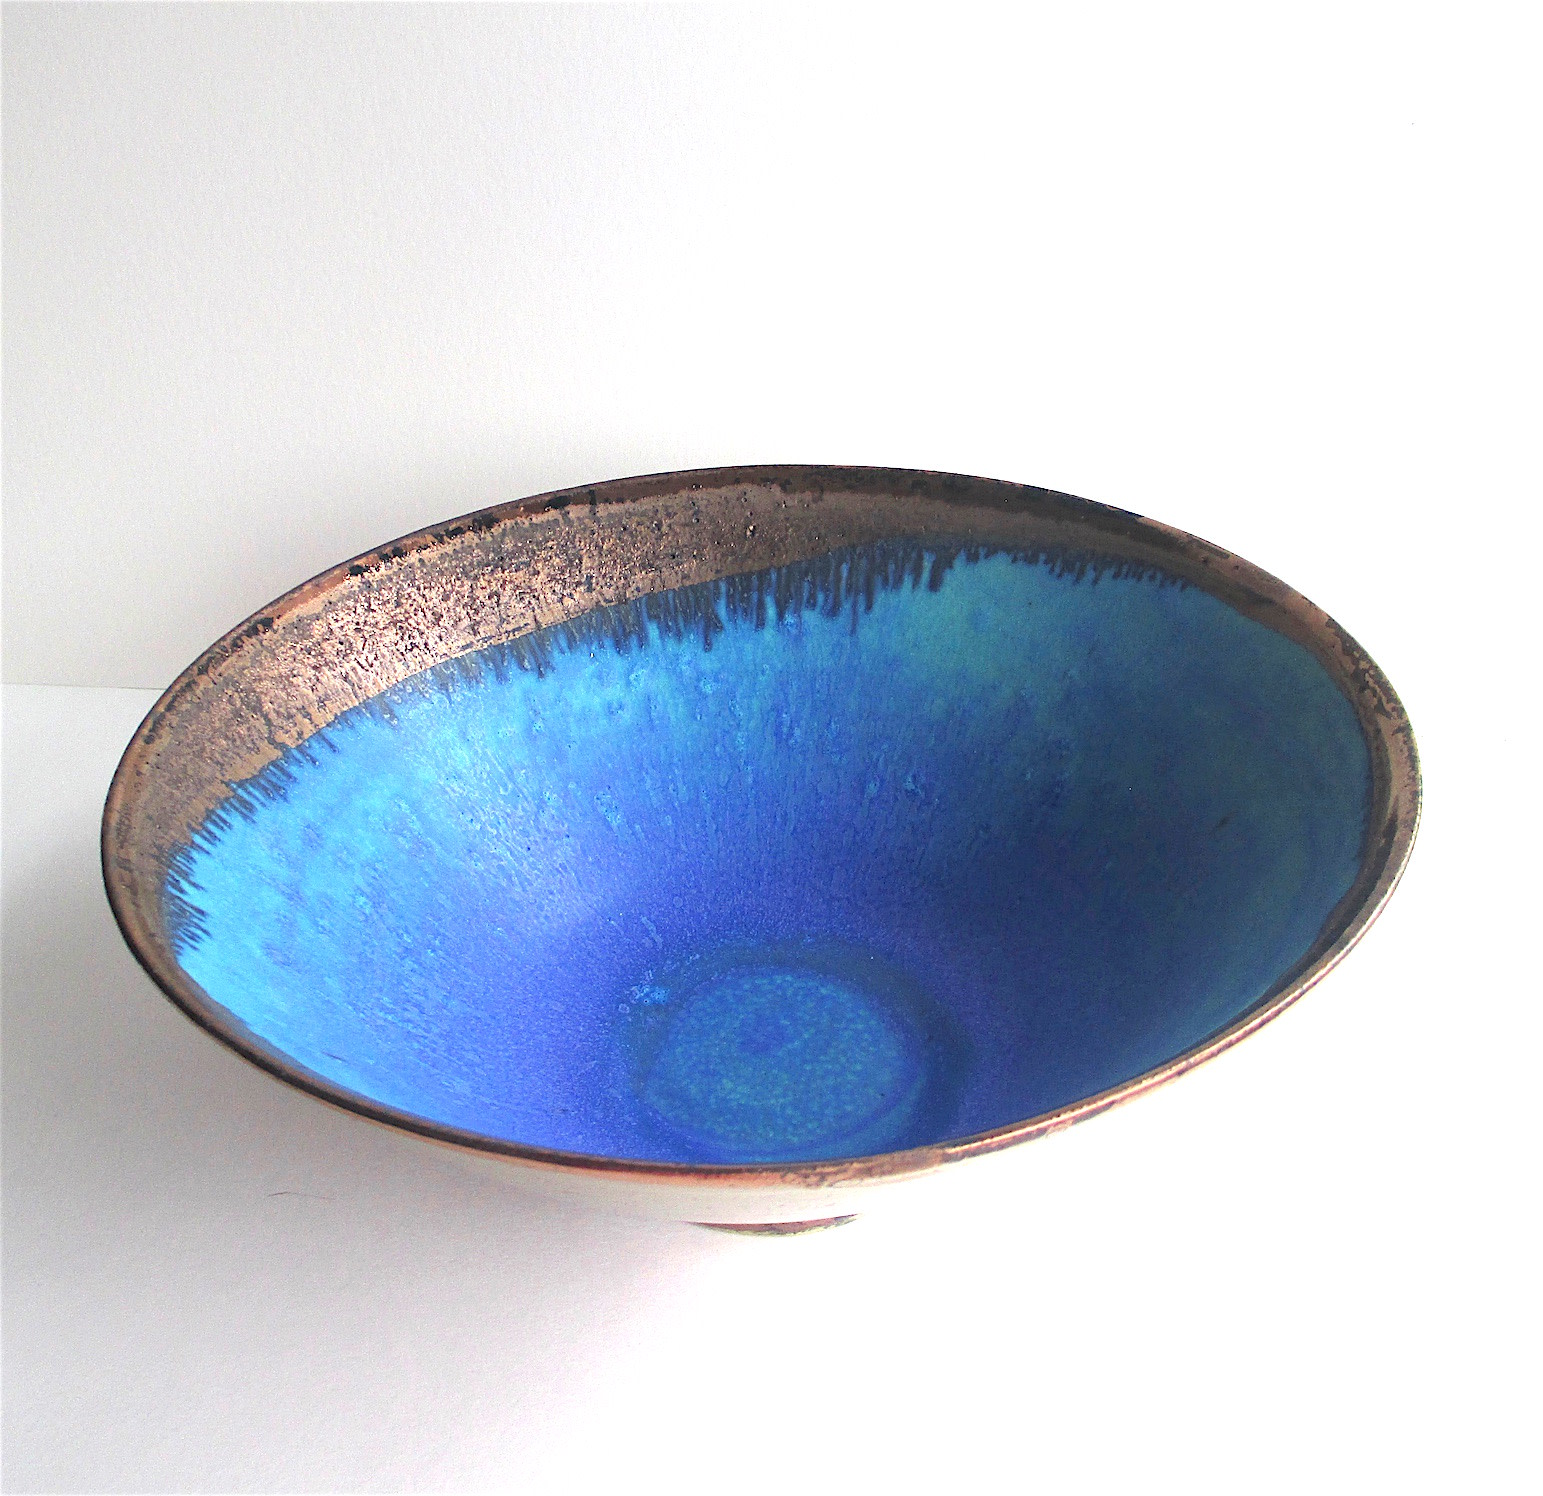 "<span class=""link fancybox-details-link""><a href=""/artists/44-sarah-perry/works/6975-sarah-perry-copper-lustred-blue-pool-bowl-2020/"">View Detail Page</a></span><div class=""artist""><strong>Sarah Perry</strong></div> b. 1945 <div class=""title""><em>Copper lustred Blue Pool Bowl</em>, 2020</div> <div class=""signed_and_dated"">labelled on the bottom</div> <div class=""medium"">Stoneware</div> <div class=""dimensions"">h. 10 x 24 cm </div><div class=""copyright_line"">Own Art: £ 35.20 x 10 Months, 0% APR</div>"